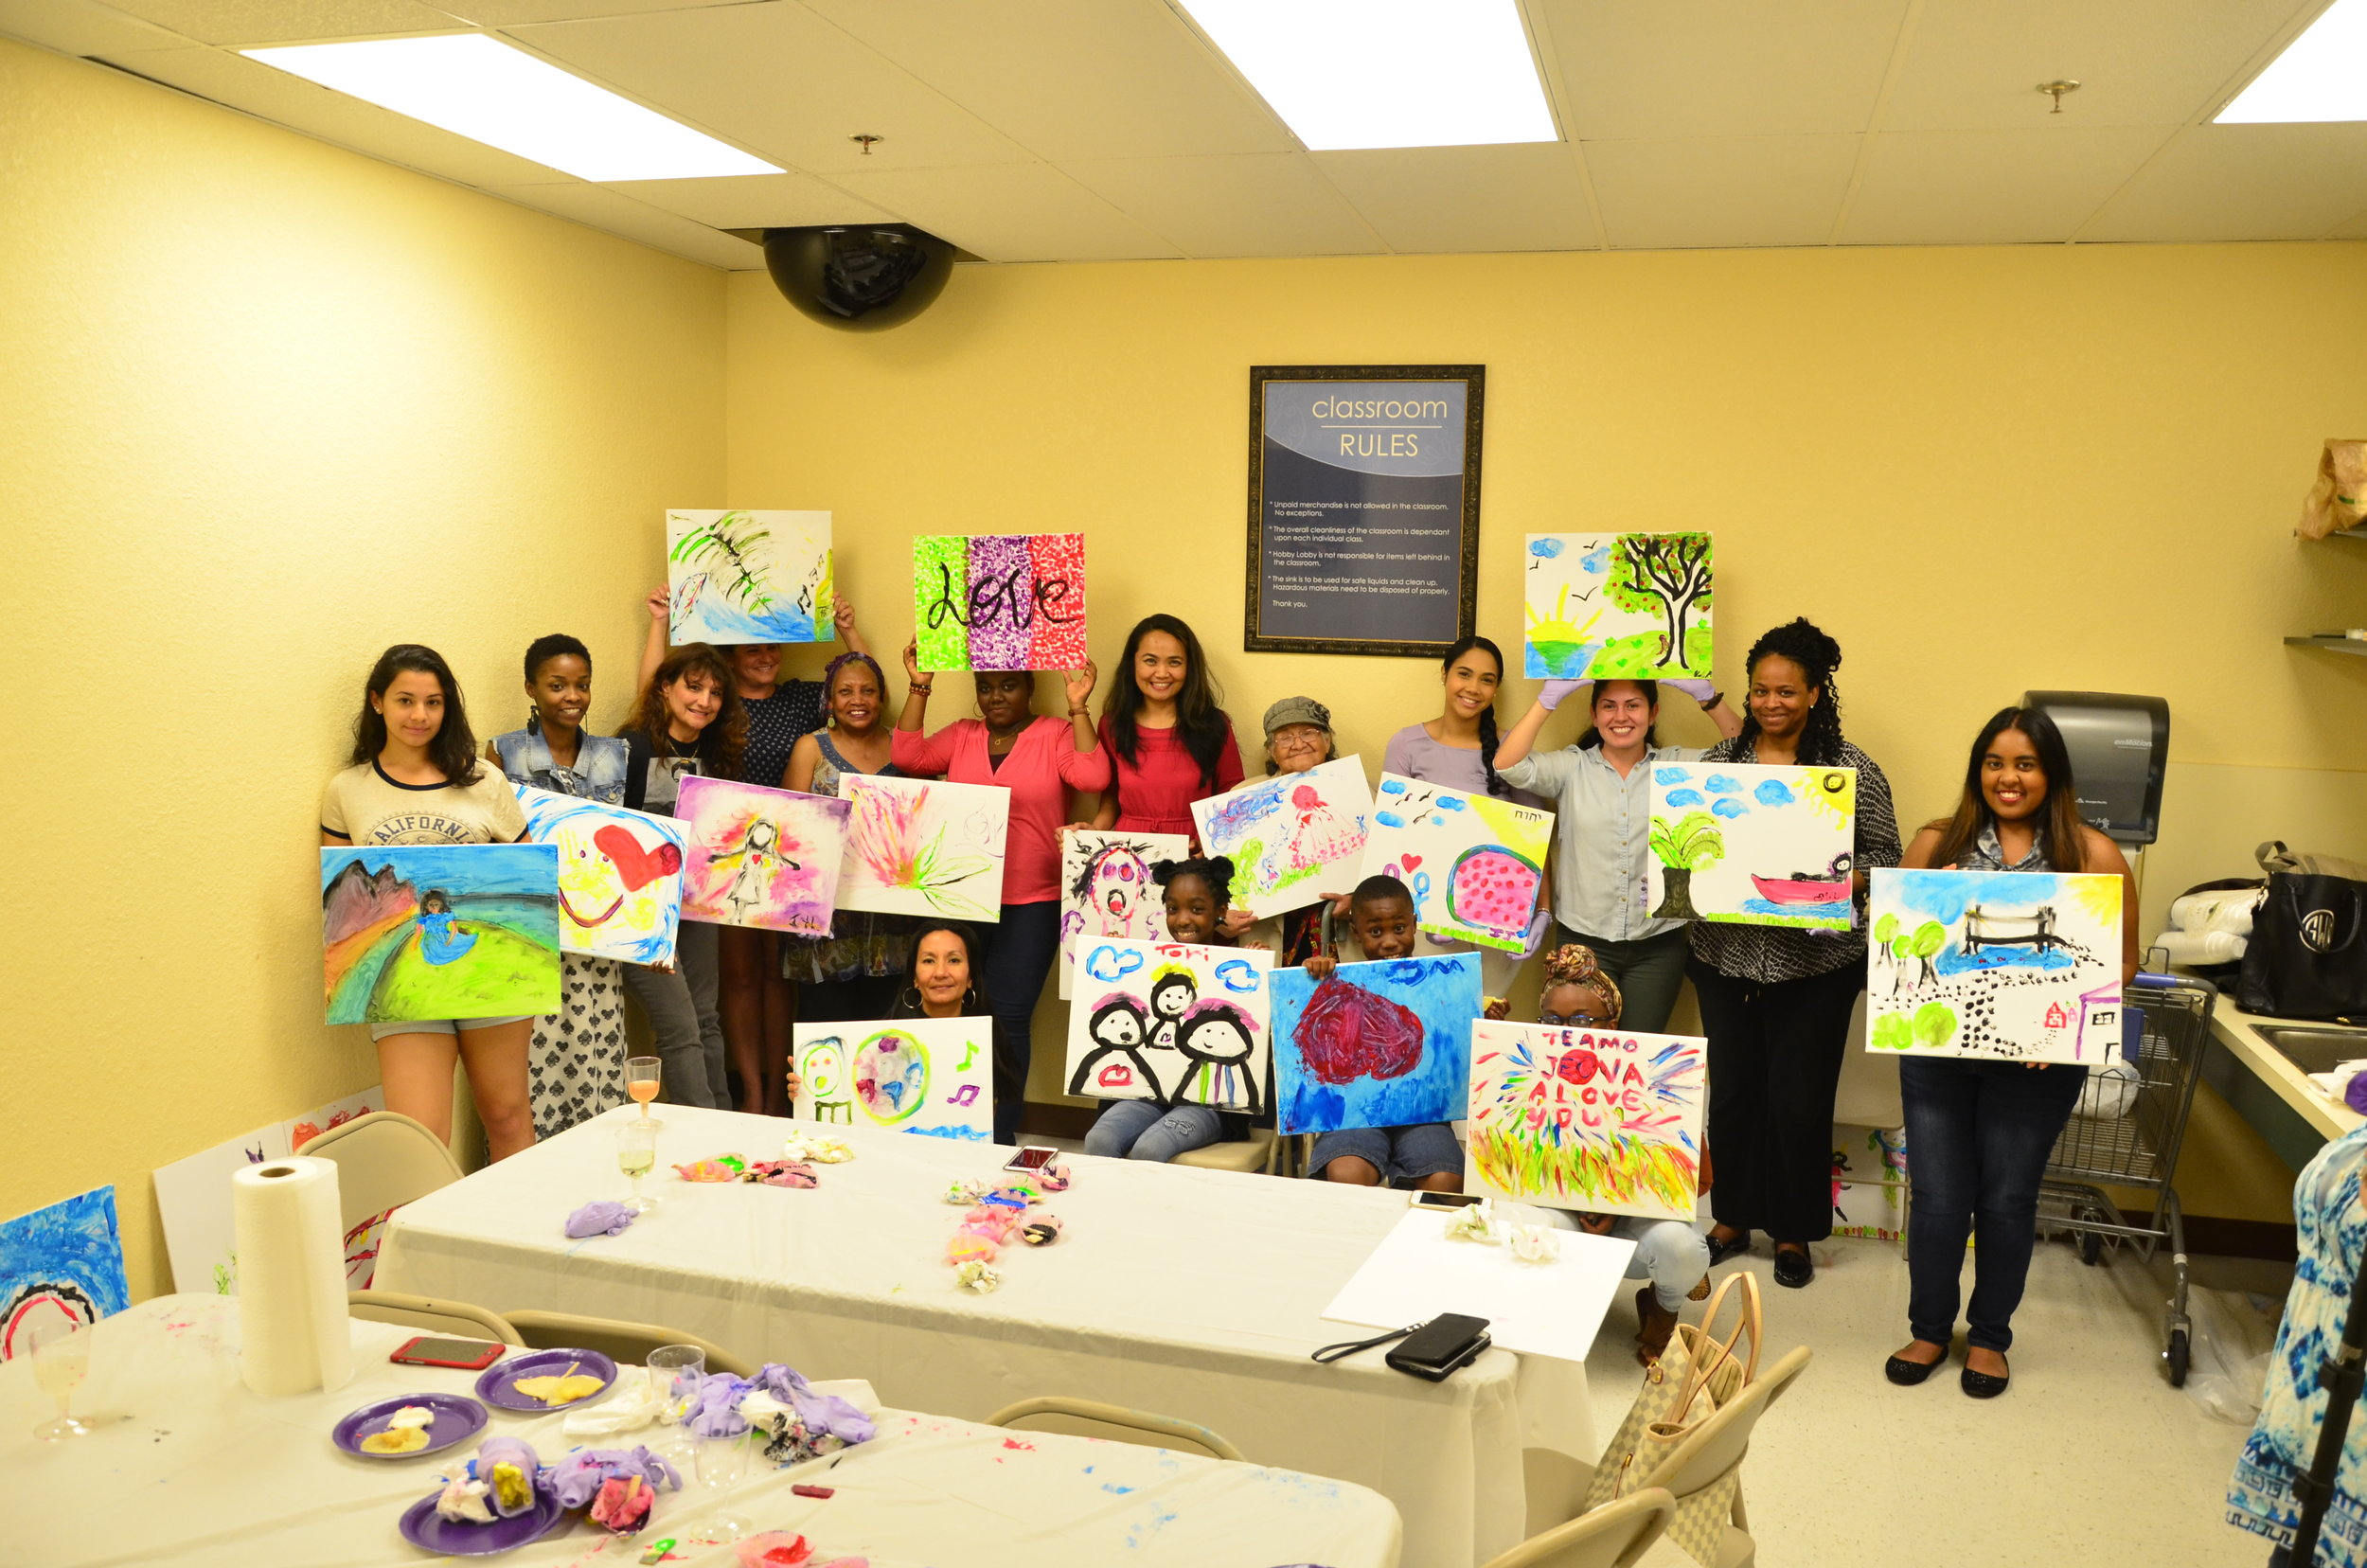 This is a fun, upbeat environment for women, teens and their families to learn, bond, grow & share practical lessons on how to release stress through art. Join us at our next workshop! -